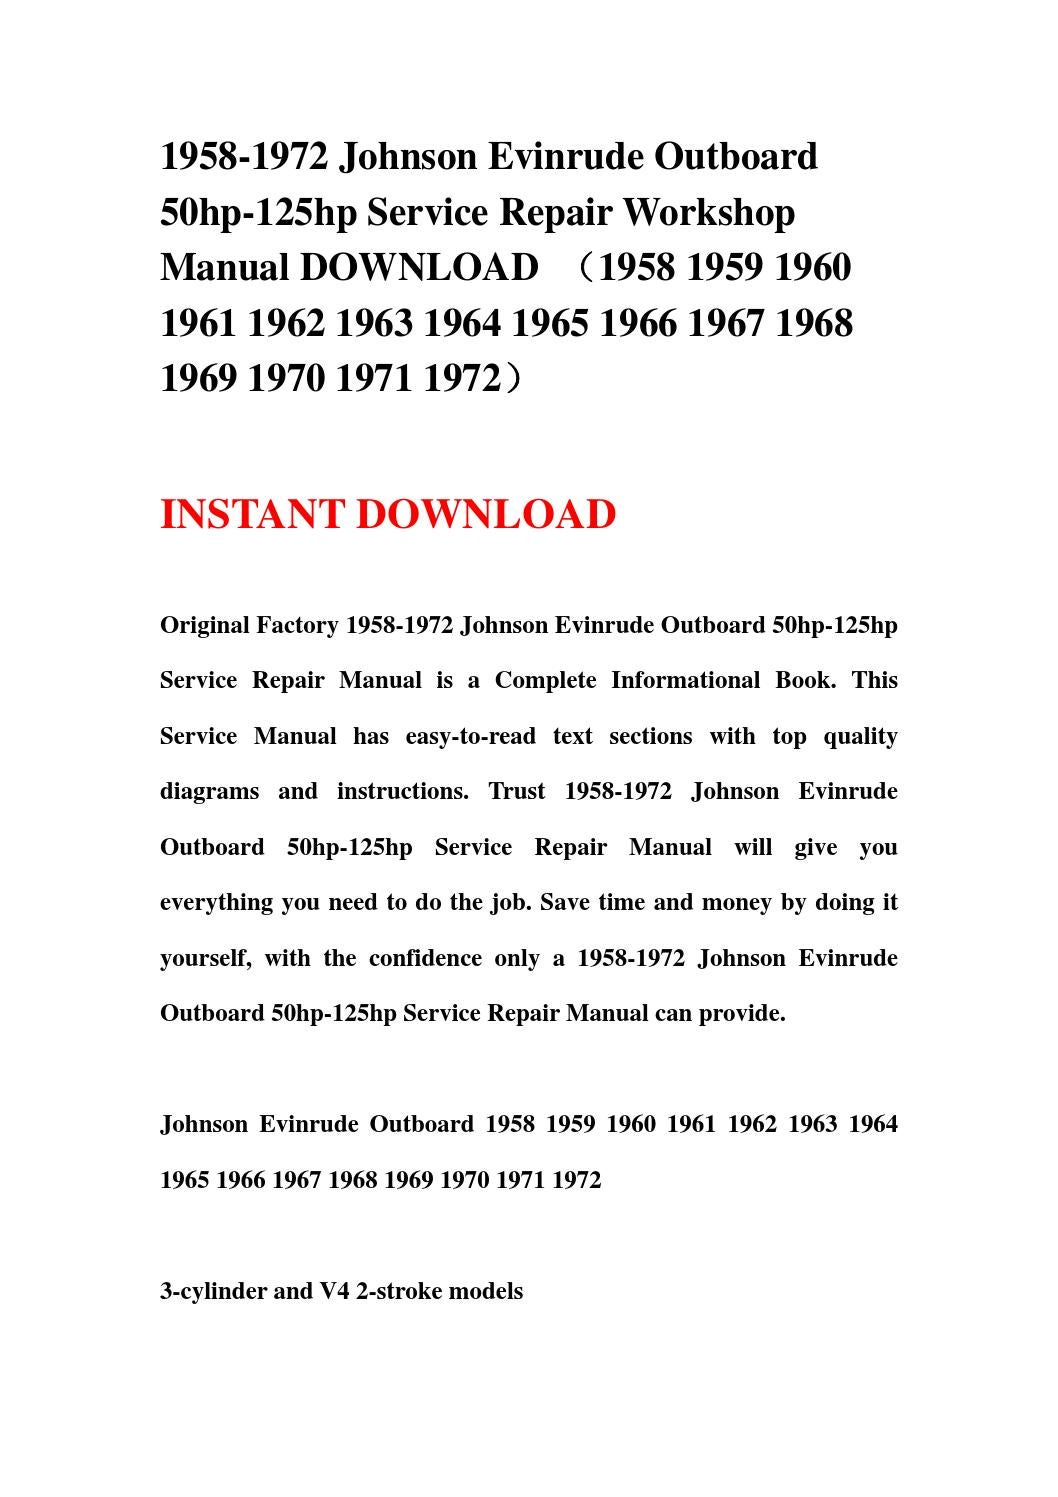 1958-1972 Johnson Evinrude Outboard 50hp-125hp Service Repair Workshop  Manual DOWNLOAD (1958 1959 19 by jfhsejfn - issuu